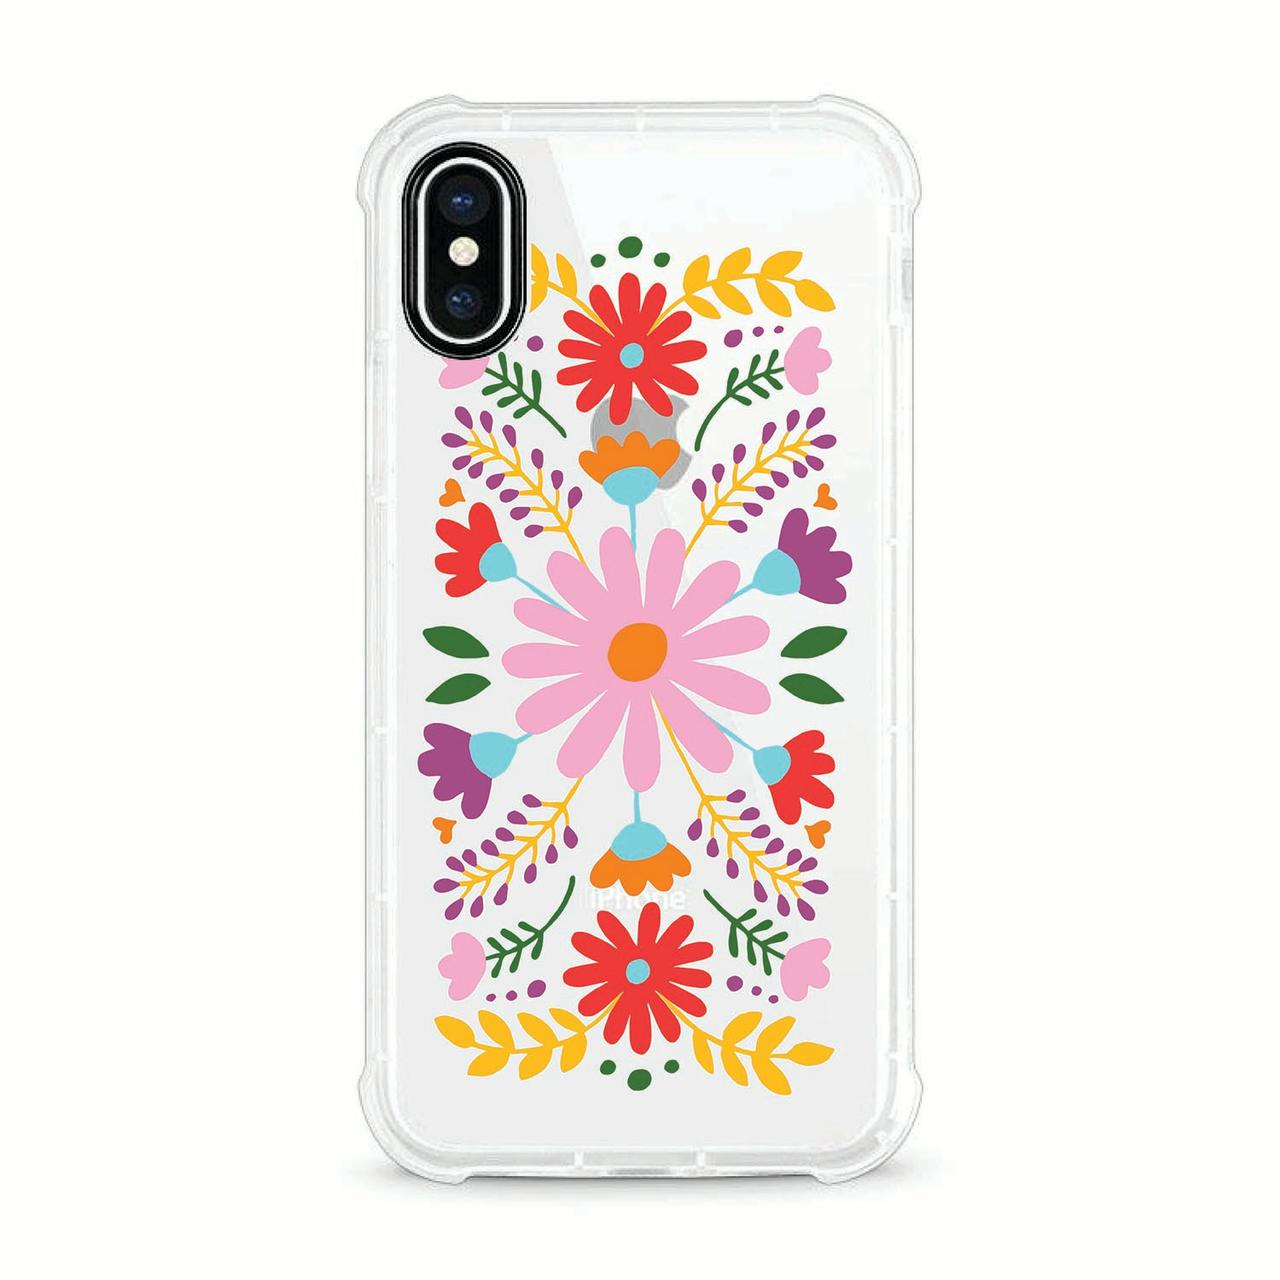 OTM Essentials iPhone X Clear Rugged Edge Phone Case, Festival Floral